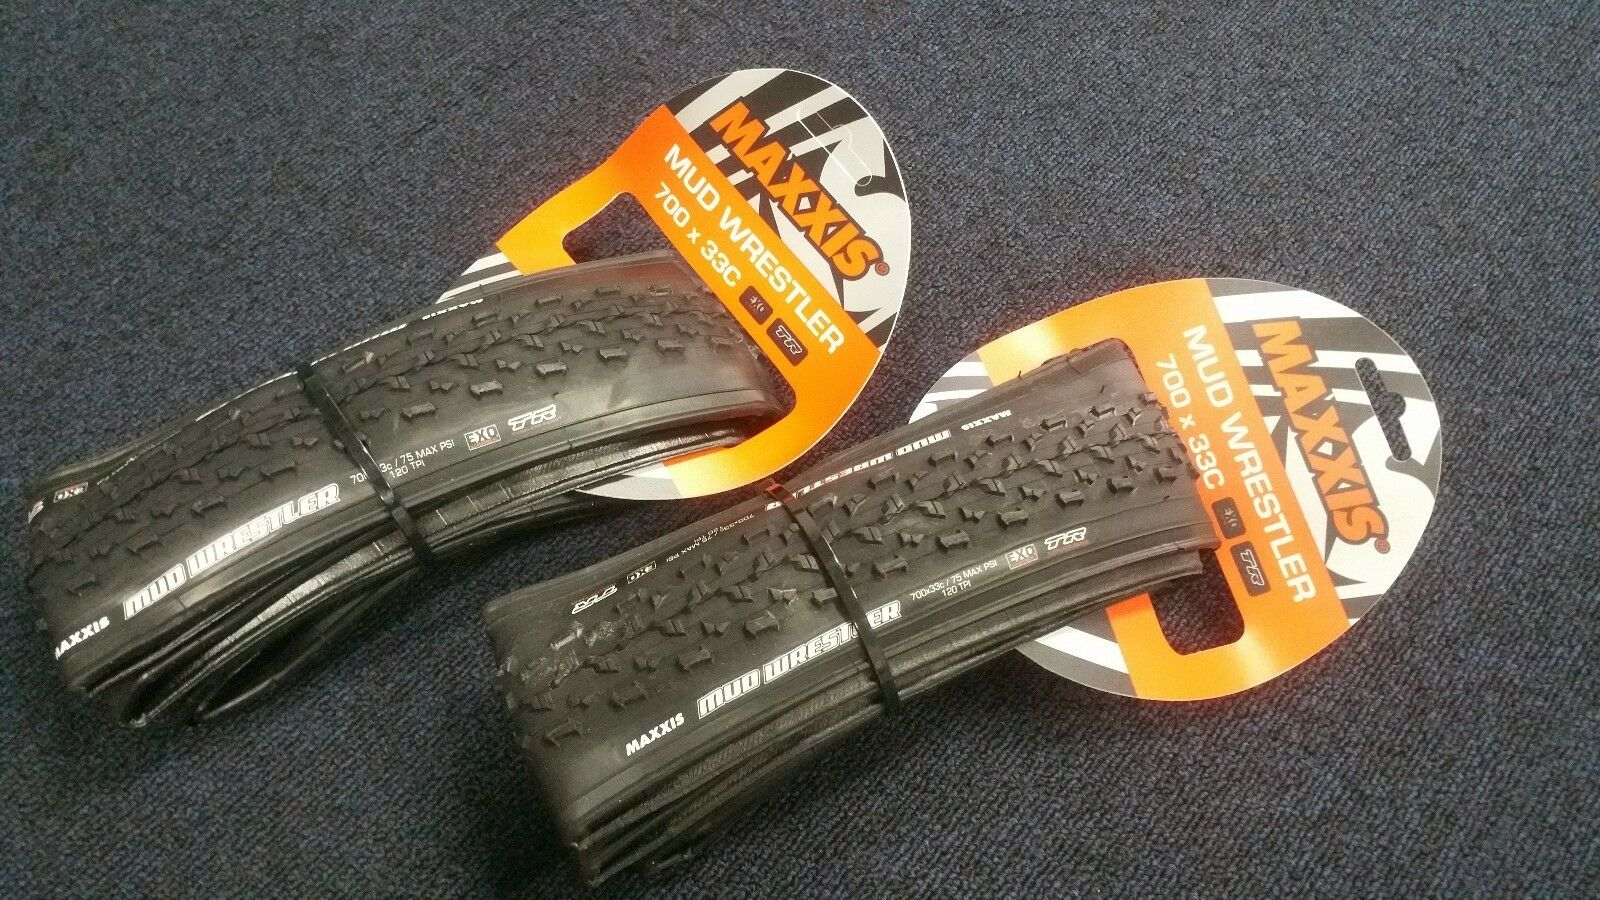 2 x Maxxis Mud Wrestler 700 x 33 Cyclocross tyres with EXO side wall